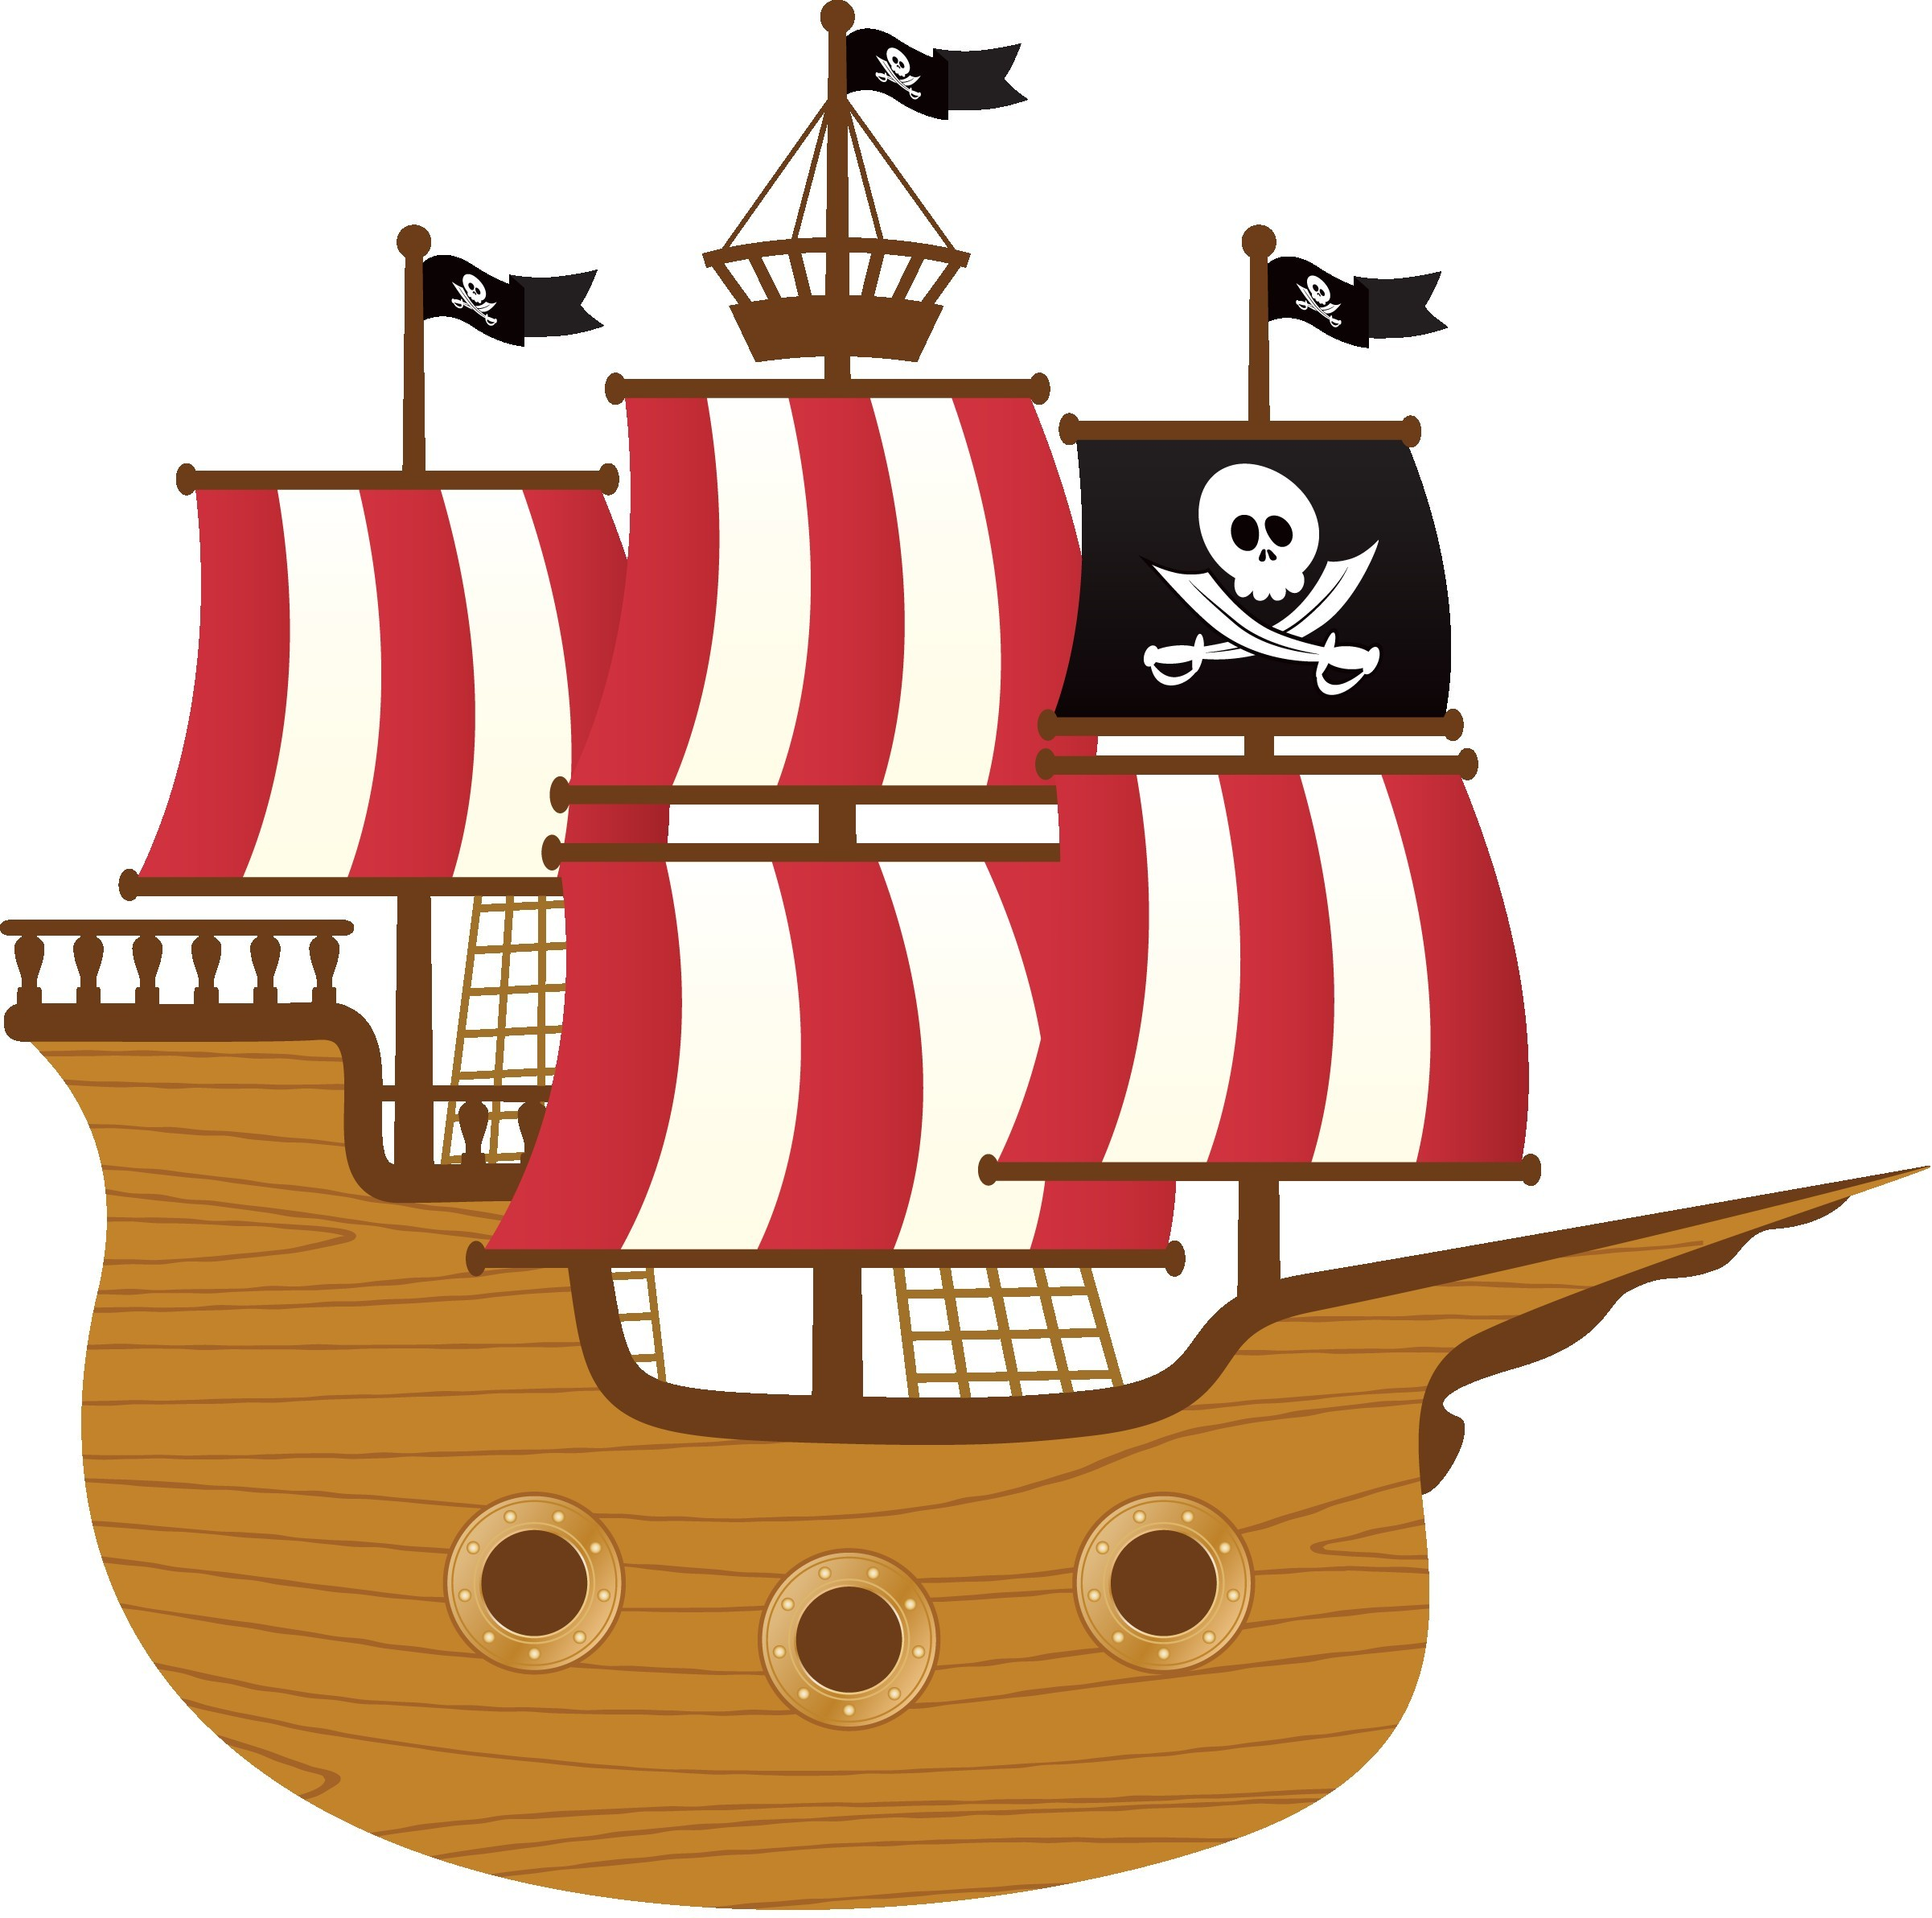 Pirate ship flag clipart vector library 44987558 Stock Vector Kids Pirate Ship Sailing In The Sea ... vector library